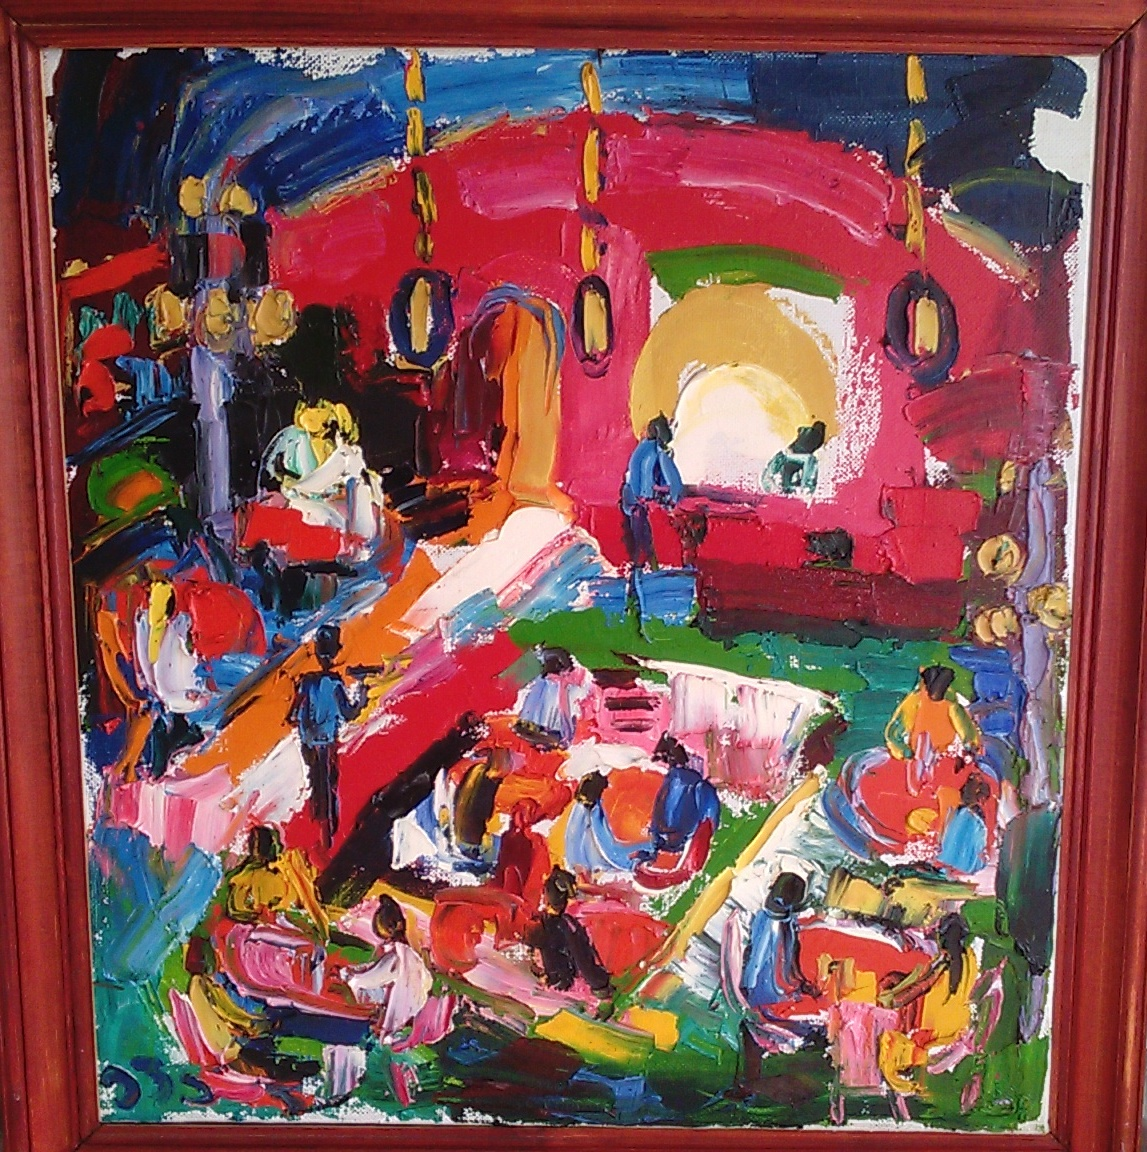 MEKHANA (Night Bar in Sozopol) Balkan motives artwork by Eva Kudukhashvili - art listed for sale on Artplode